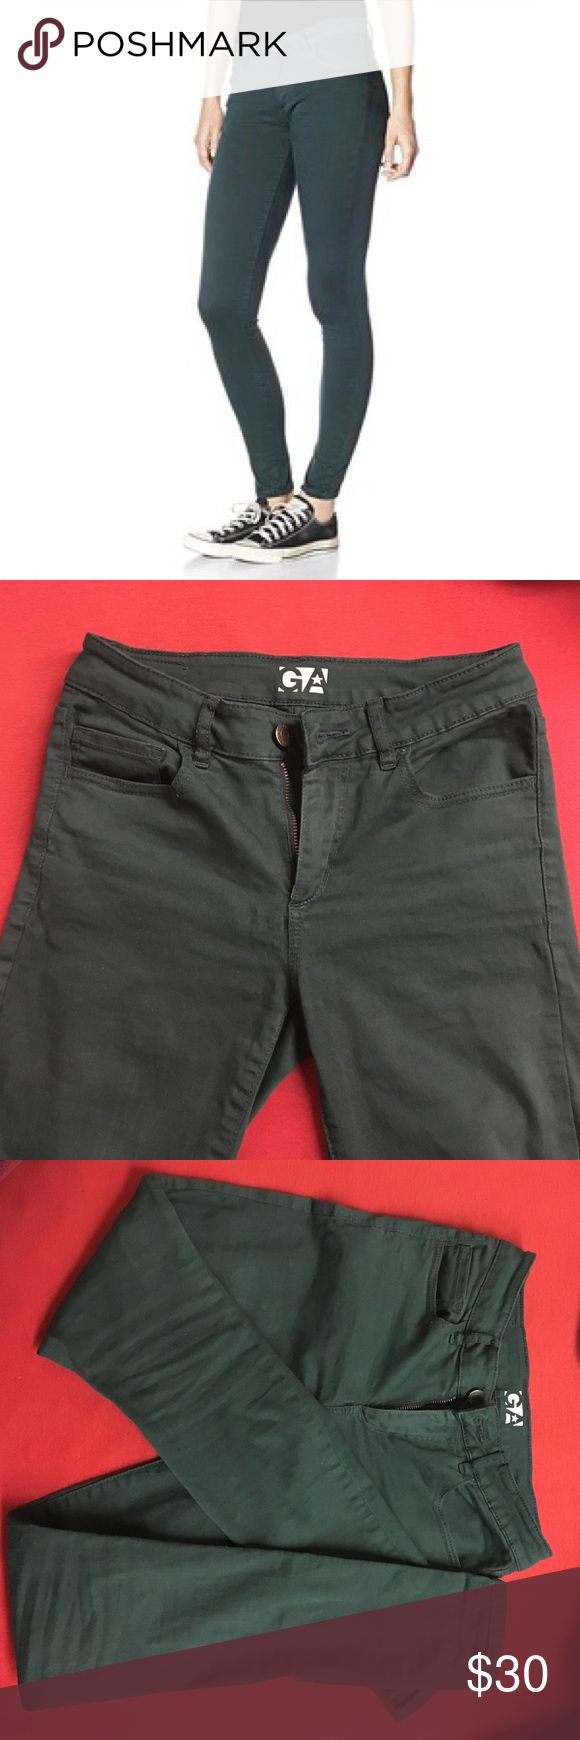 Hunter Green Garage High Waist Jeggings Worn two to three times. Make an offer. Garage Jeans Skinny